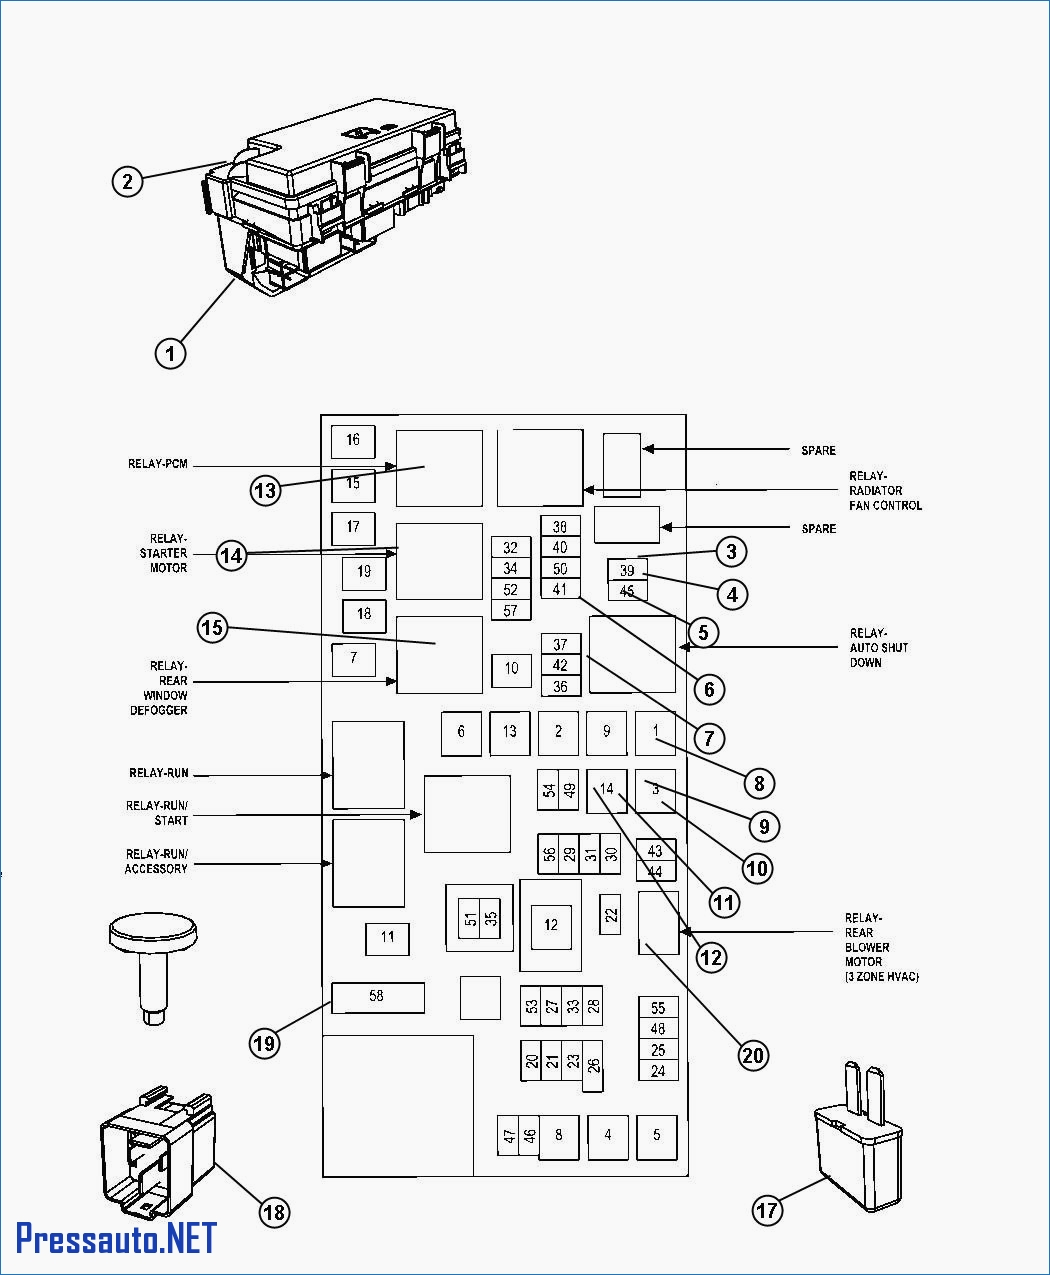 1969 dodge charger ignition wiring diagram